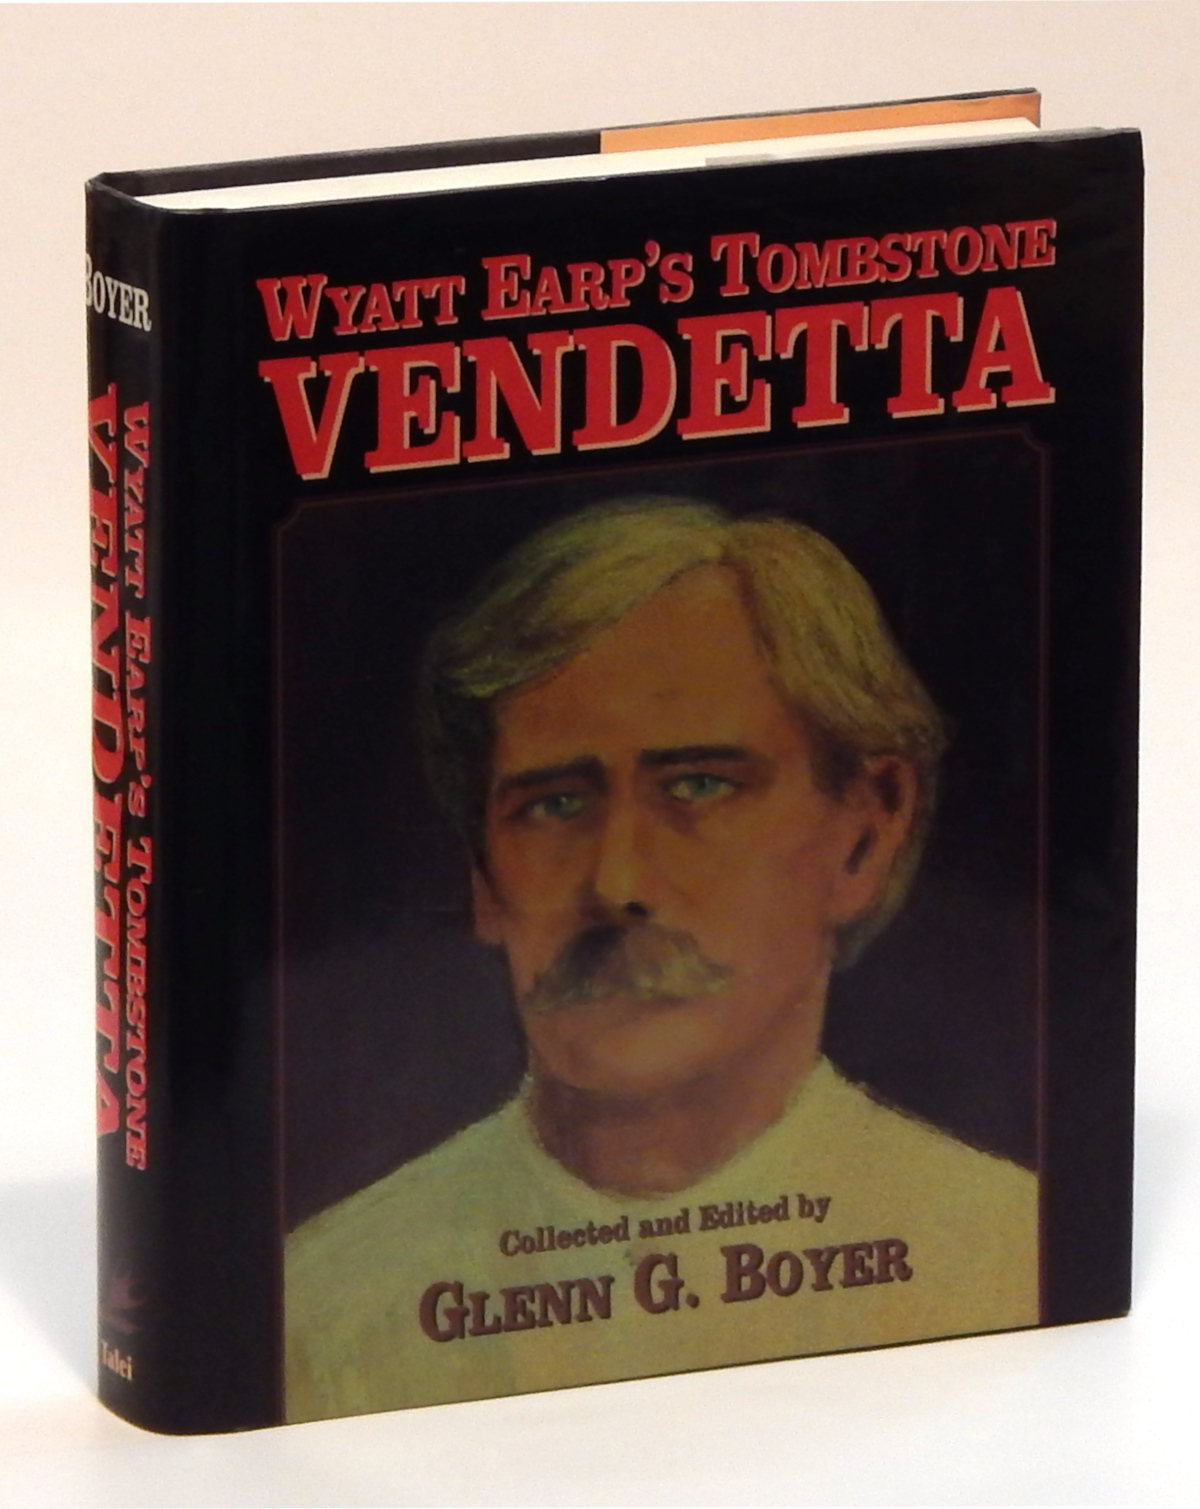 Image for Wyatt Earp's Tombstone Vendetta [with extra materials]